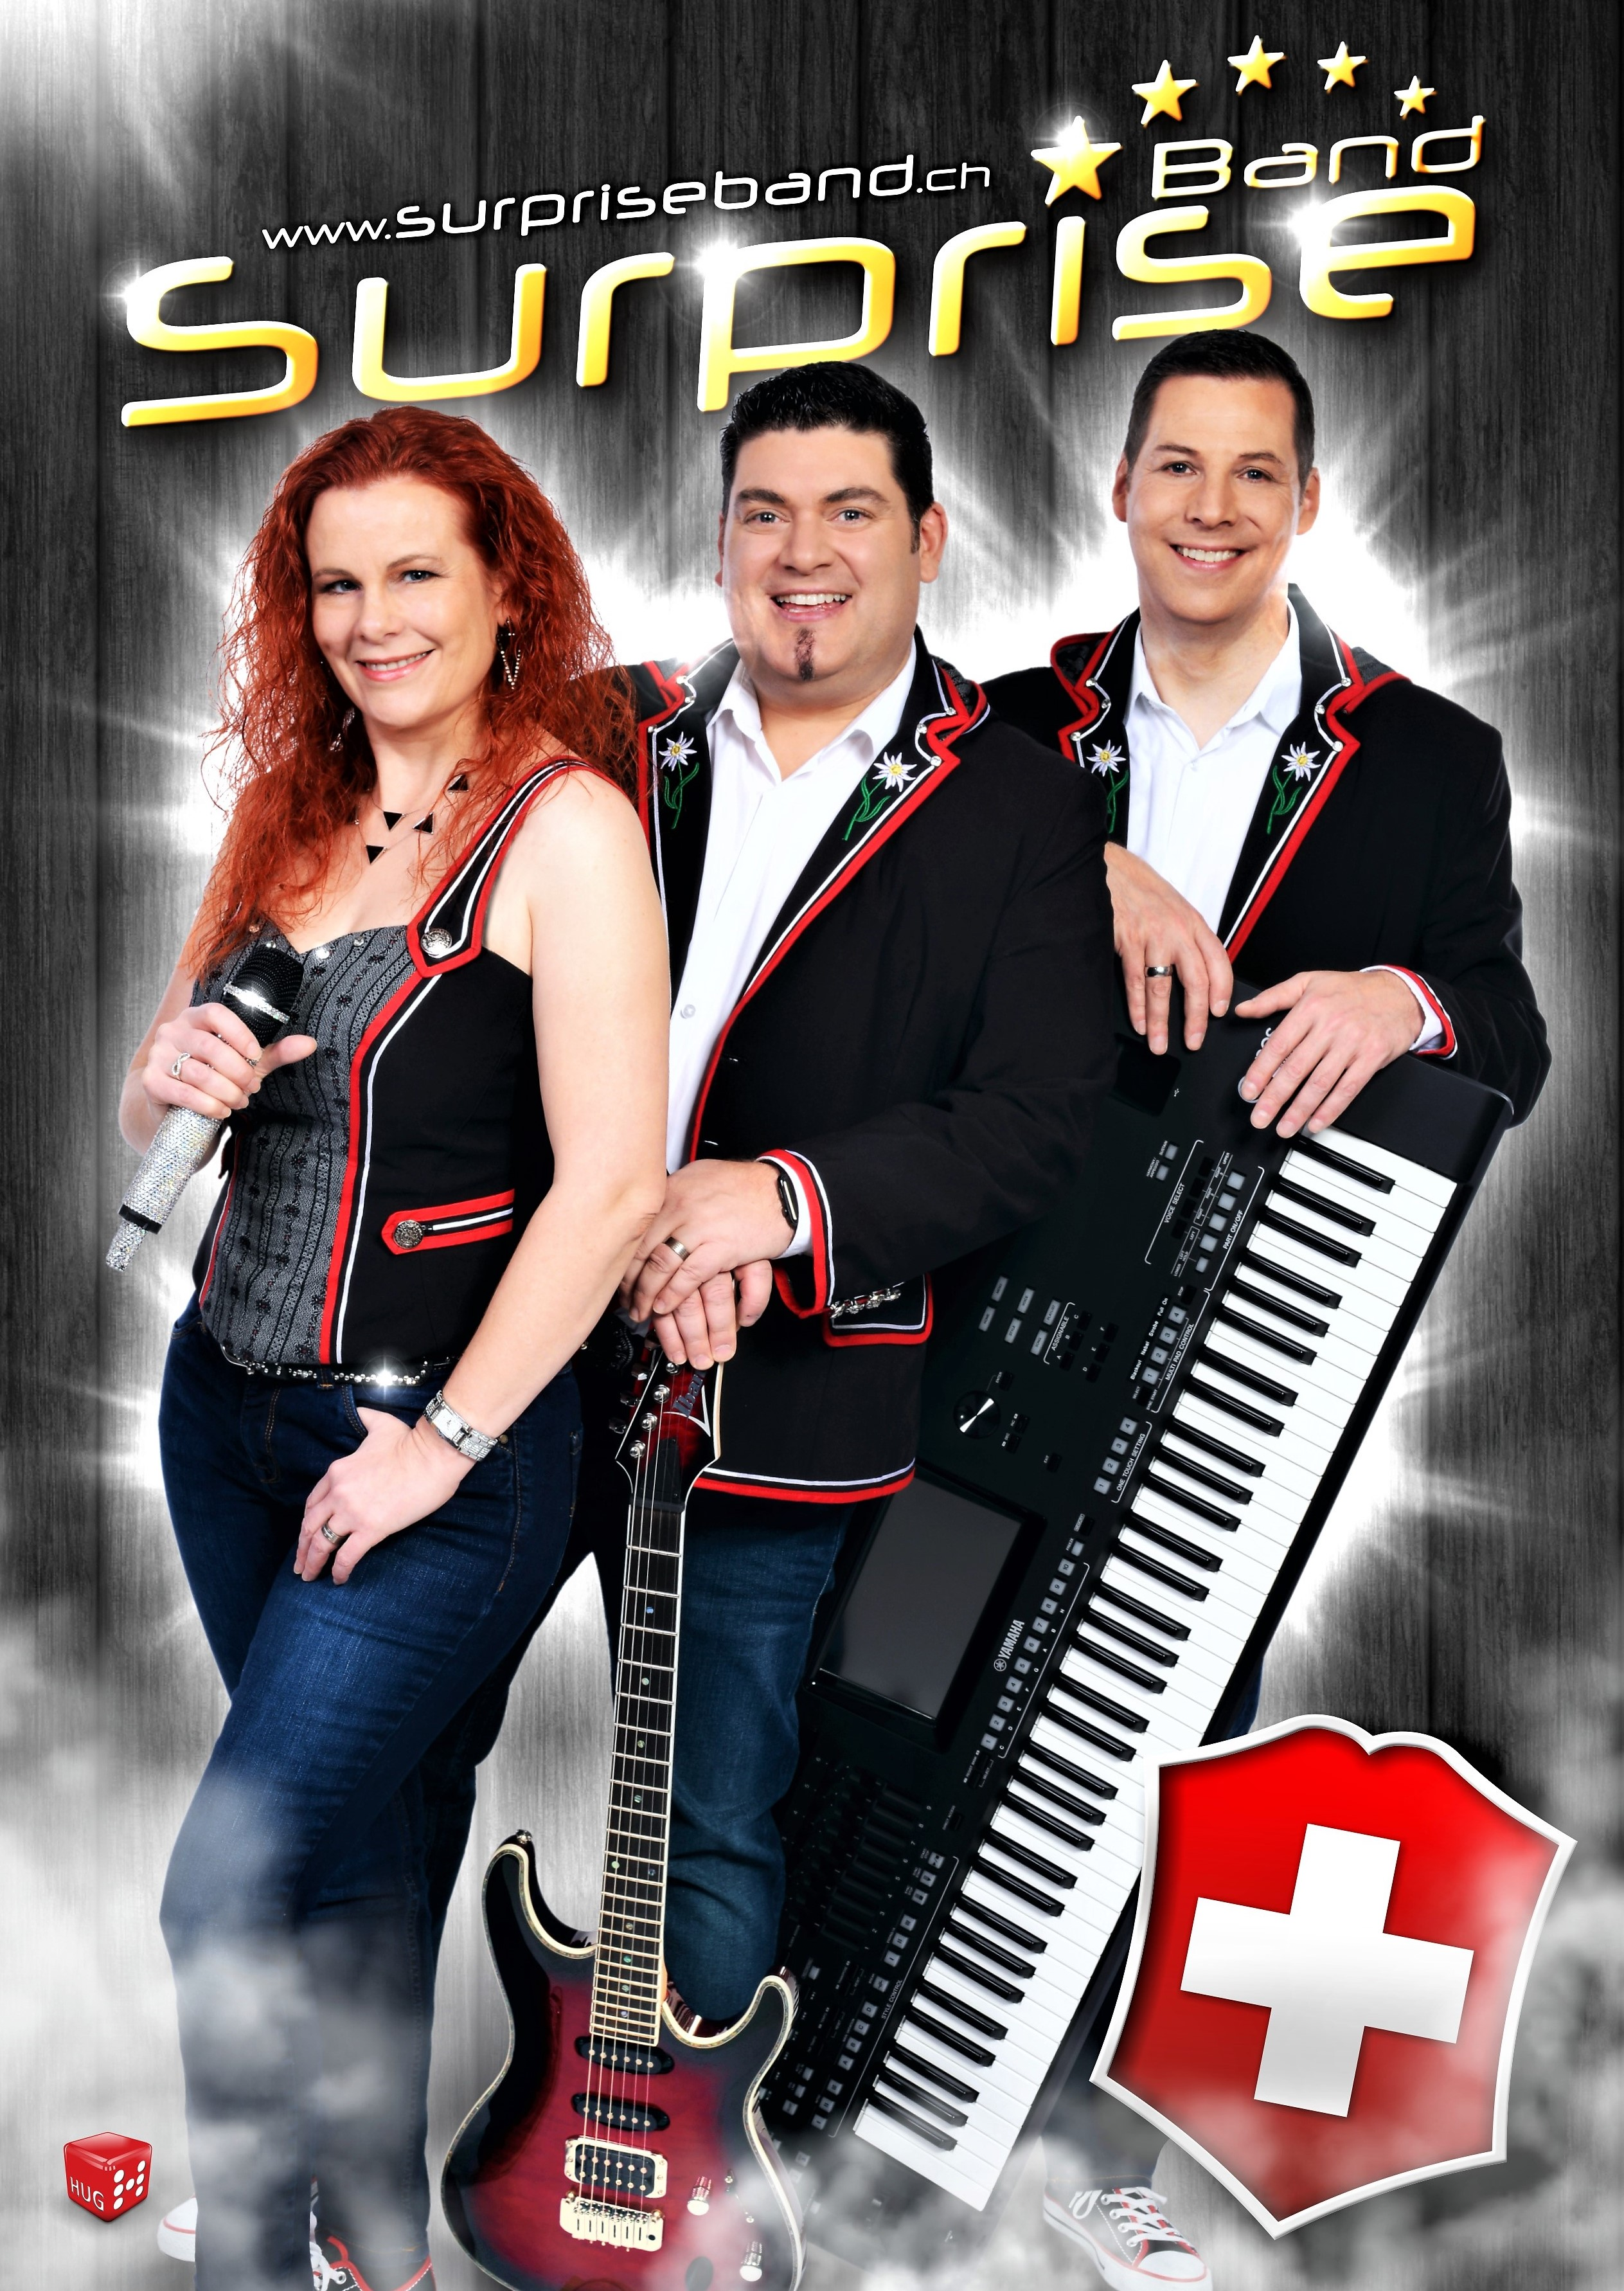 Aktogrammkarte Surprise Band 2019 Swiss.